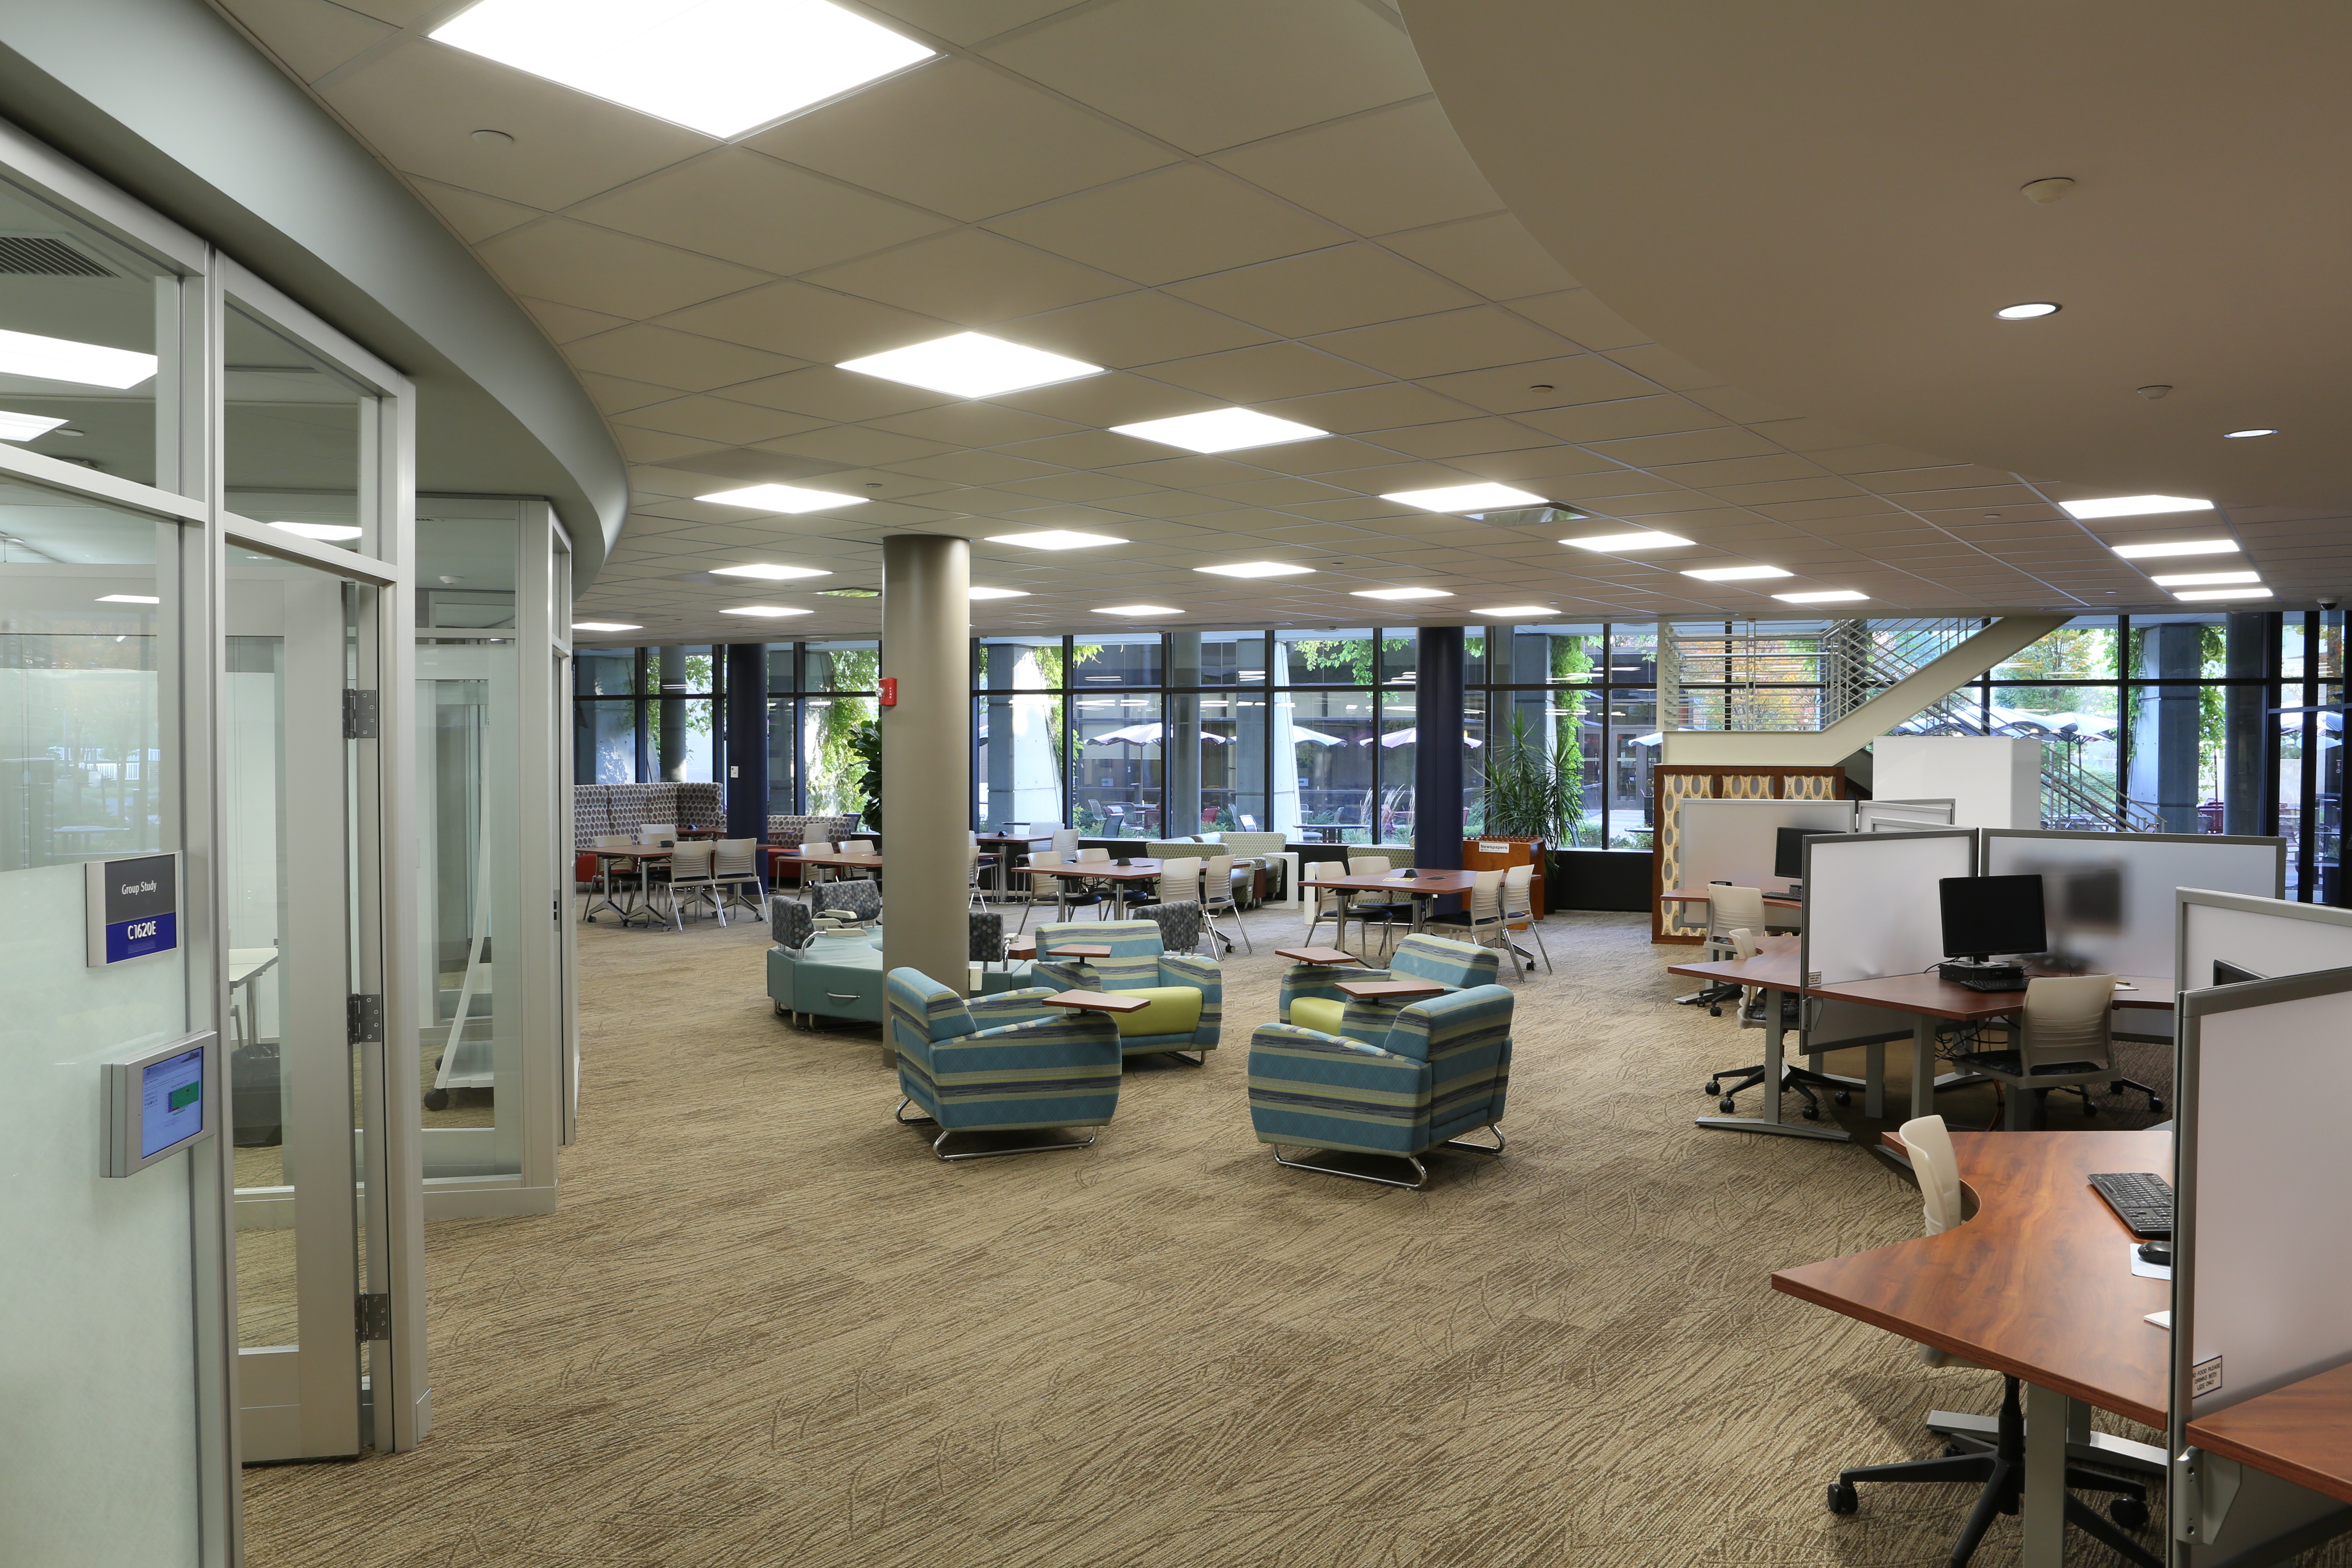 Library_11-08-2016_01